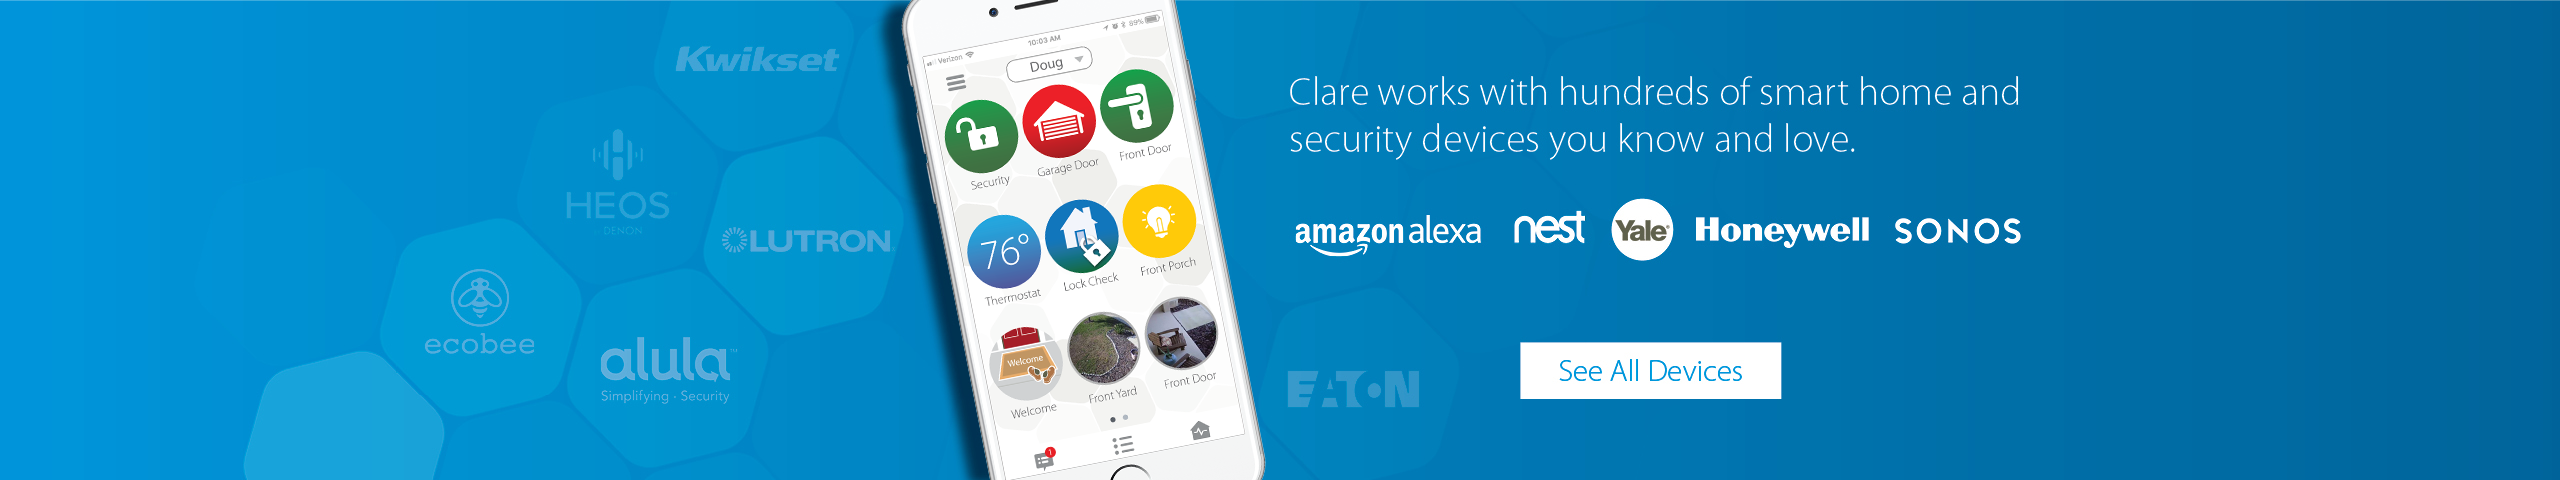 ClareWorksWith-CH 6.0-Example (1)